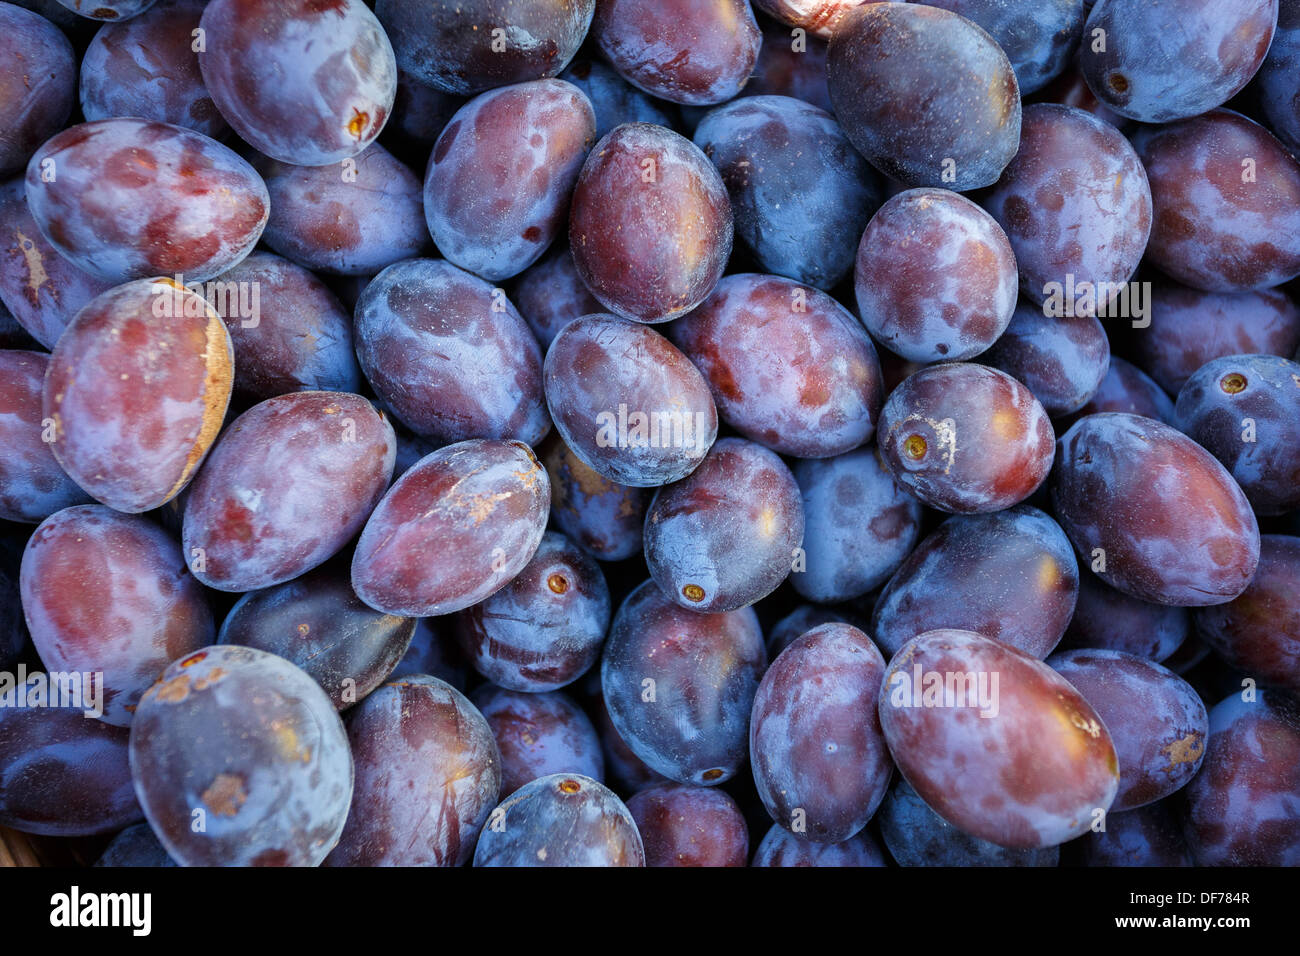 ripe purple and blue Plums (Blackthorns) Background, Texture, detail - Stock Image